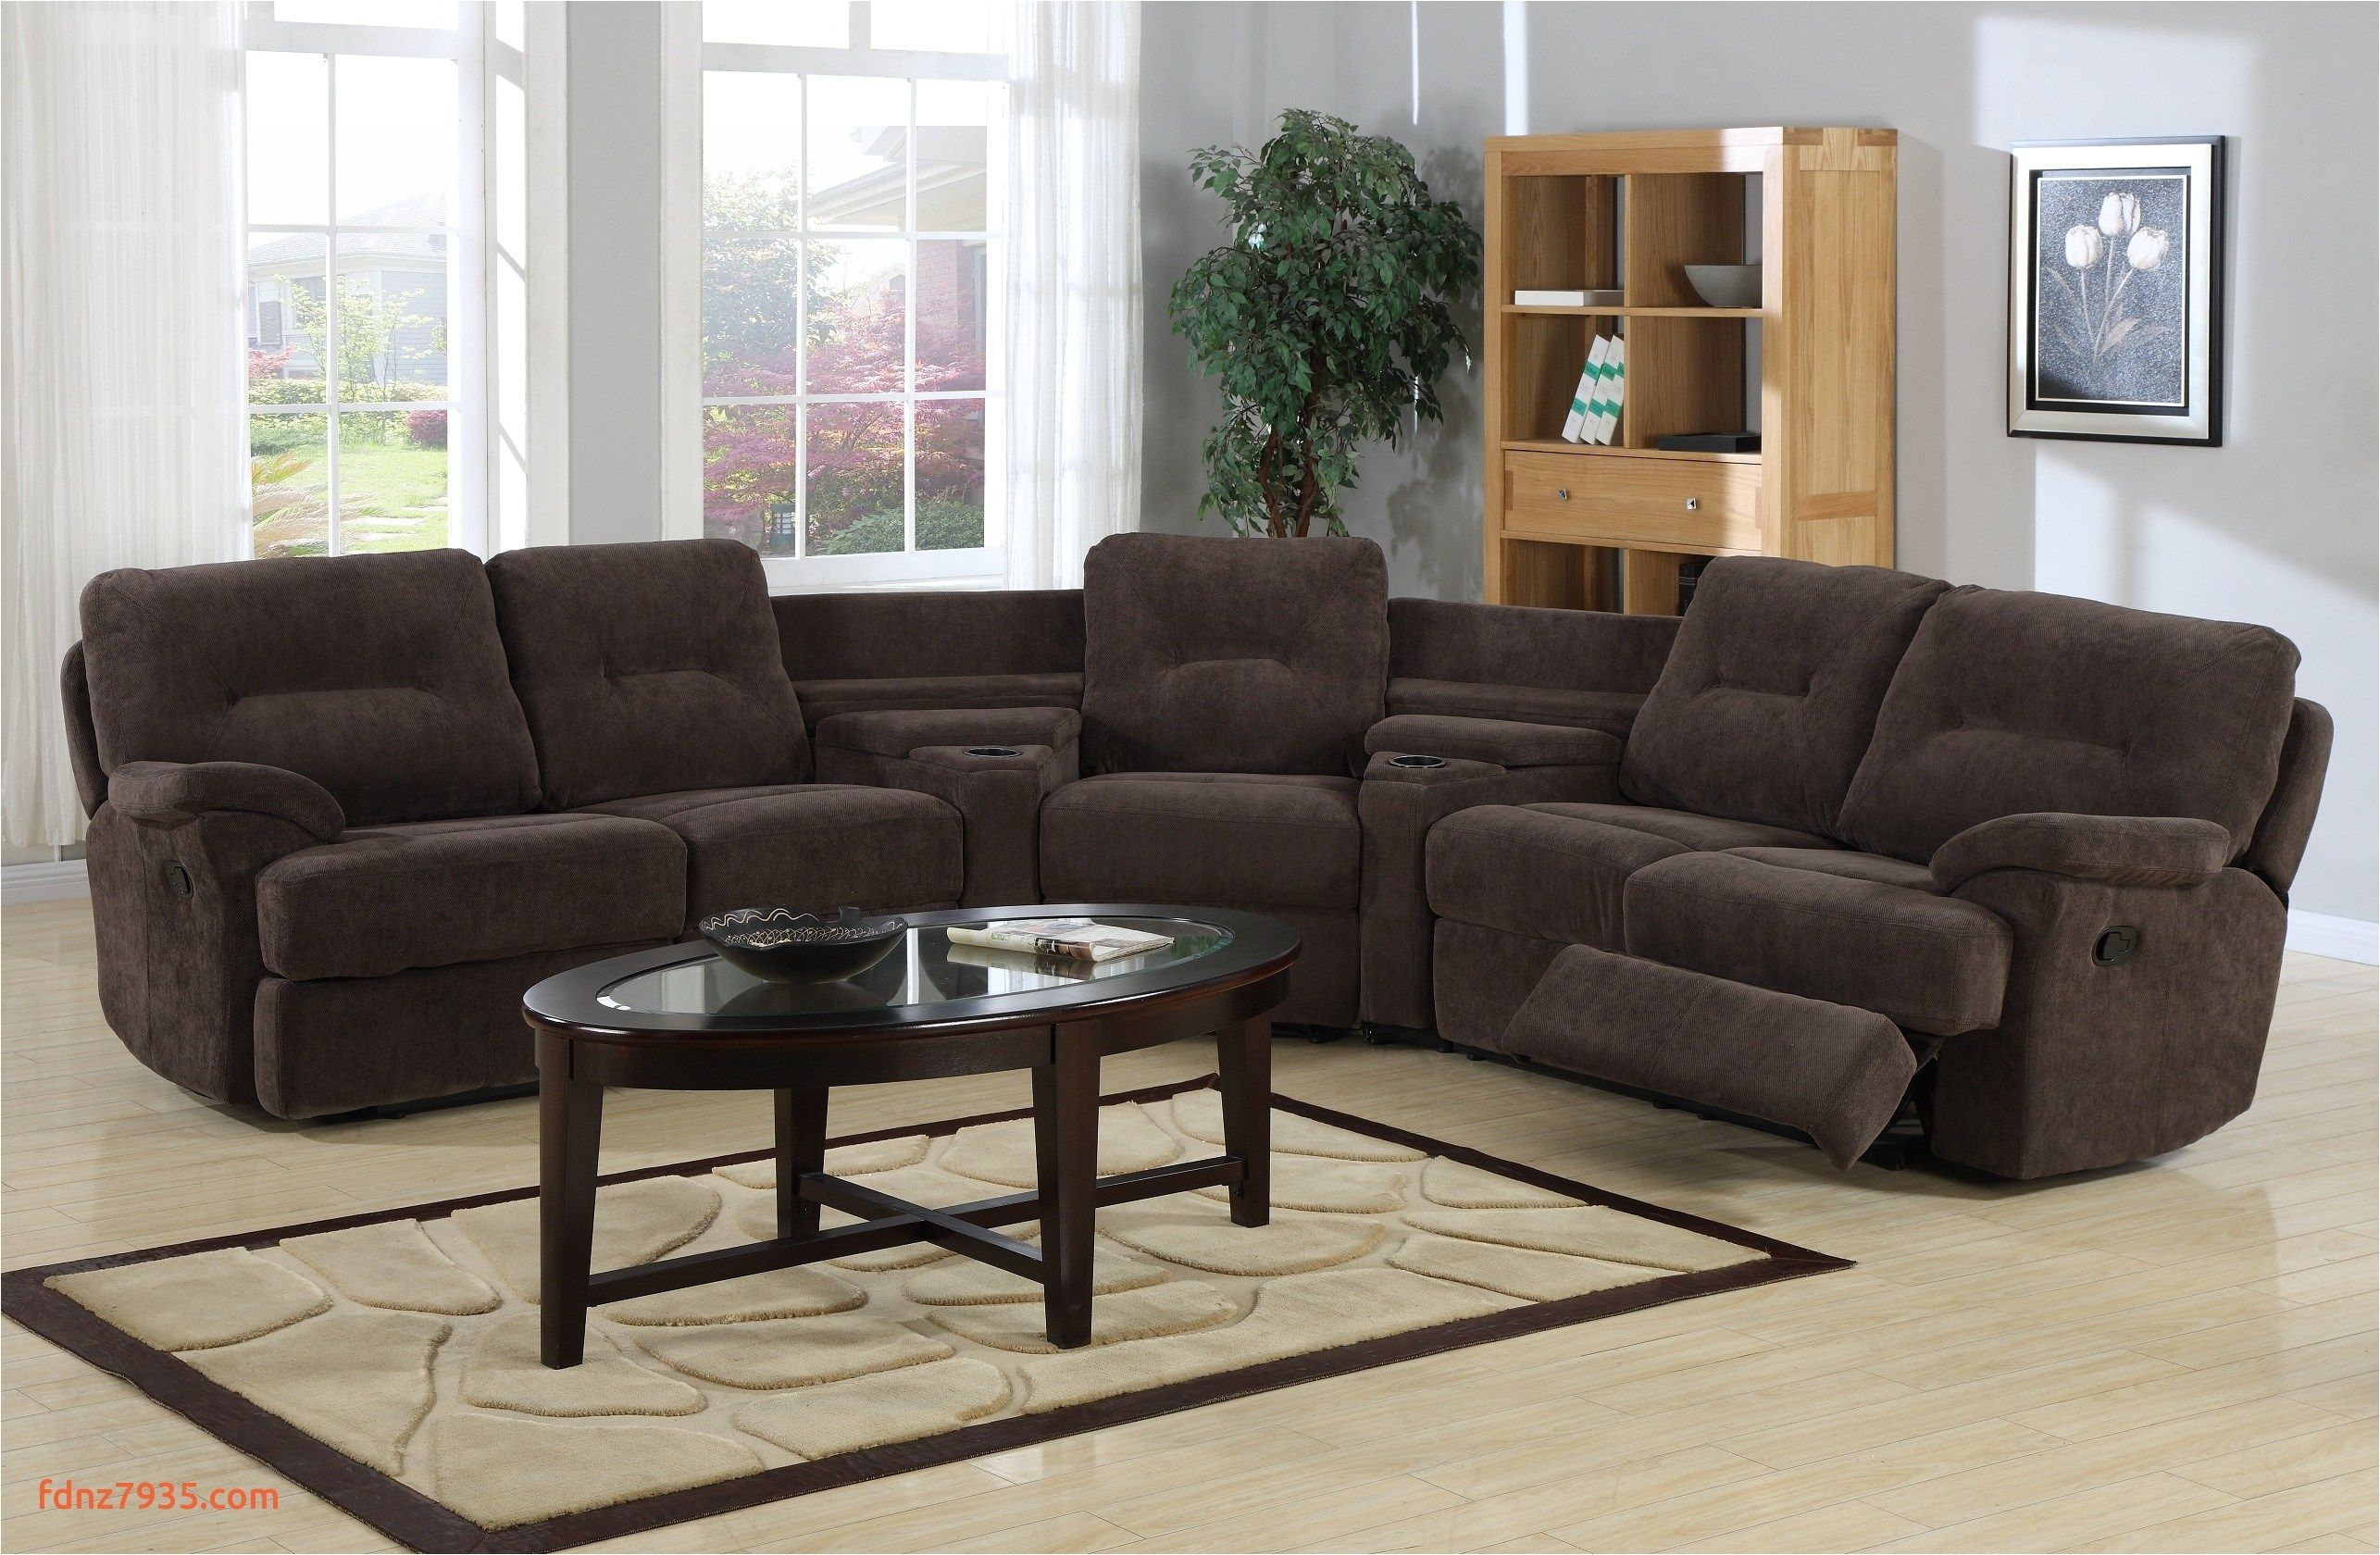 Add Flexibility In Your Living Room With An L Shaped Sectional